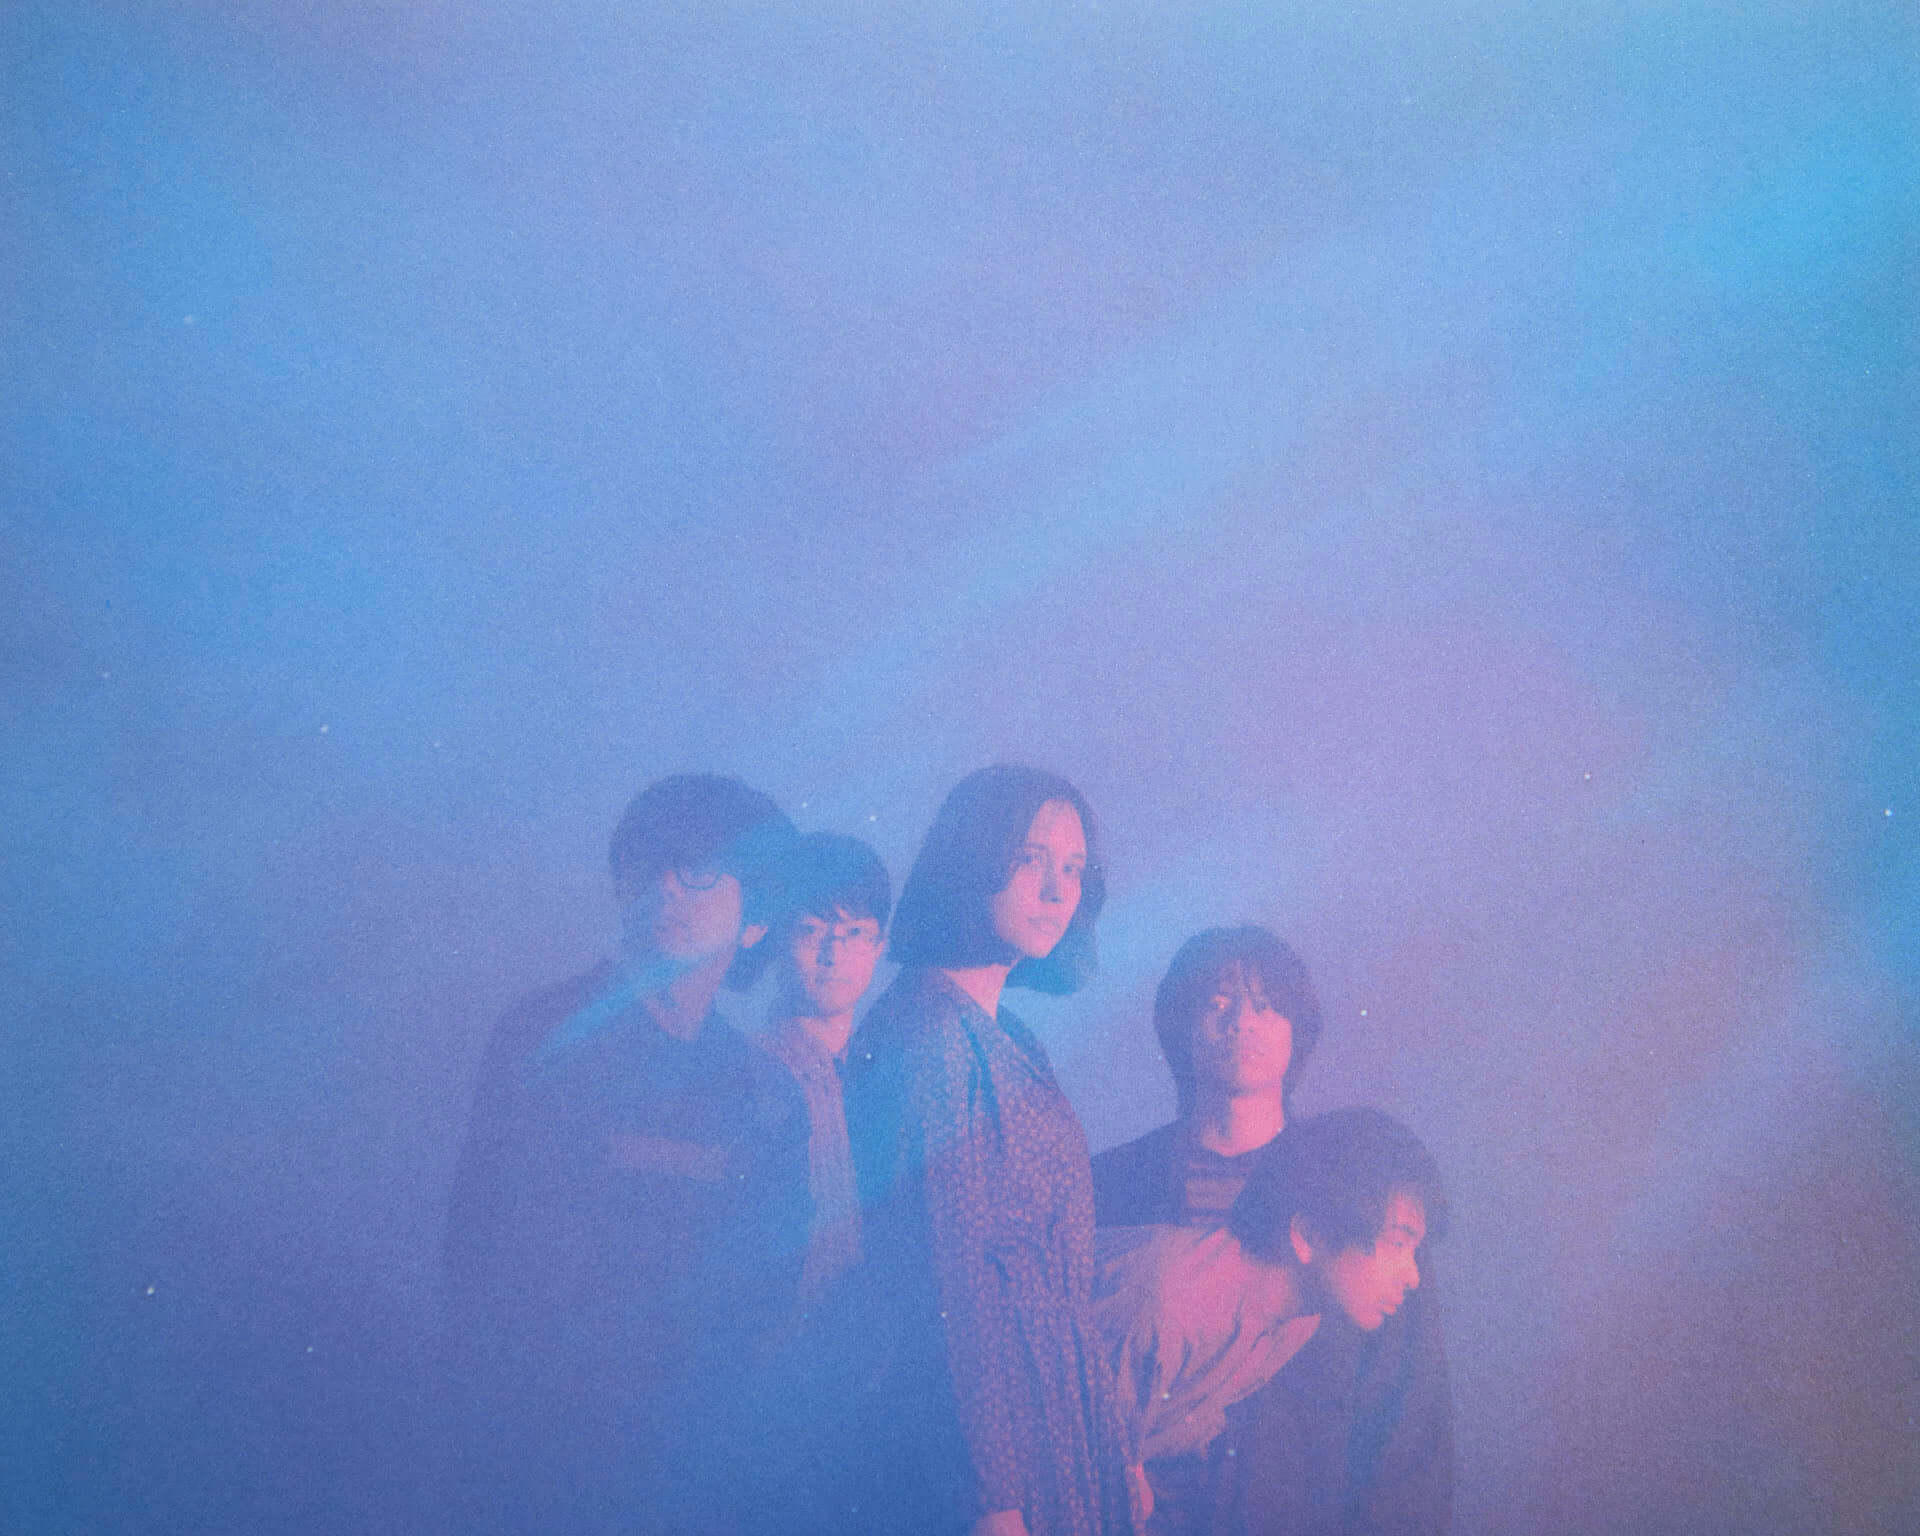 Bearwear主催<:CHAMBER FEST>にNo Buses、For Tracy Hydeが出演決定!渋谷clubasiaより無料生配信も実施 music201015_chamberfest_2-1920x1536